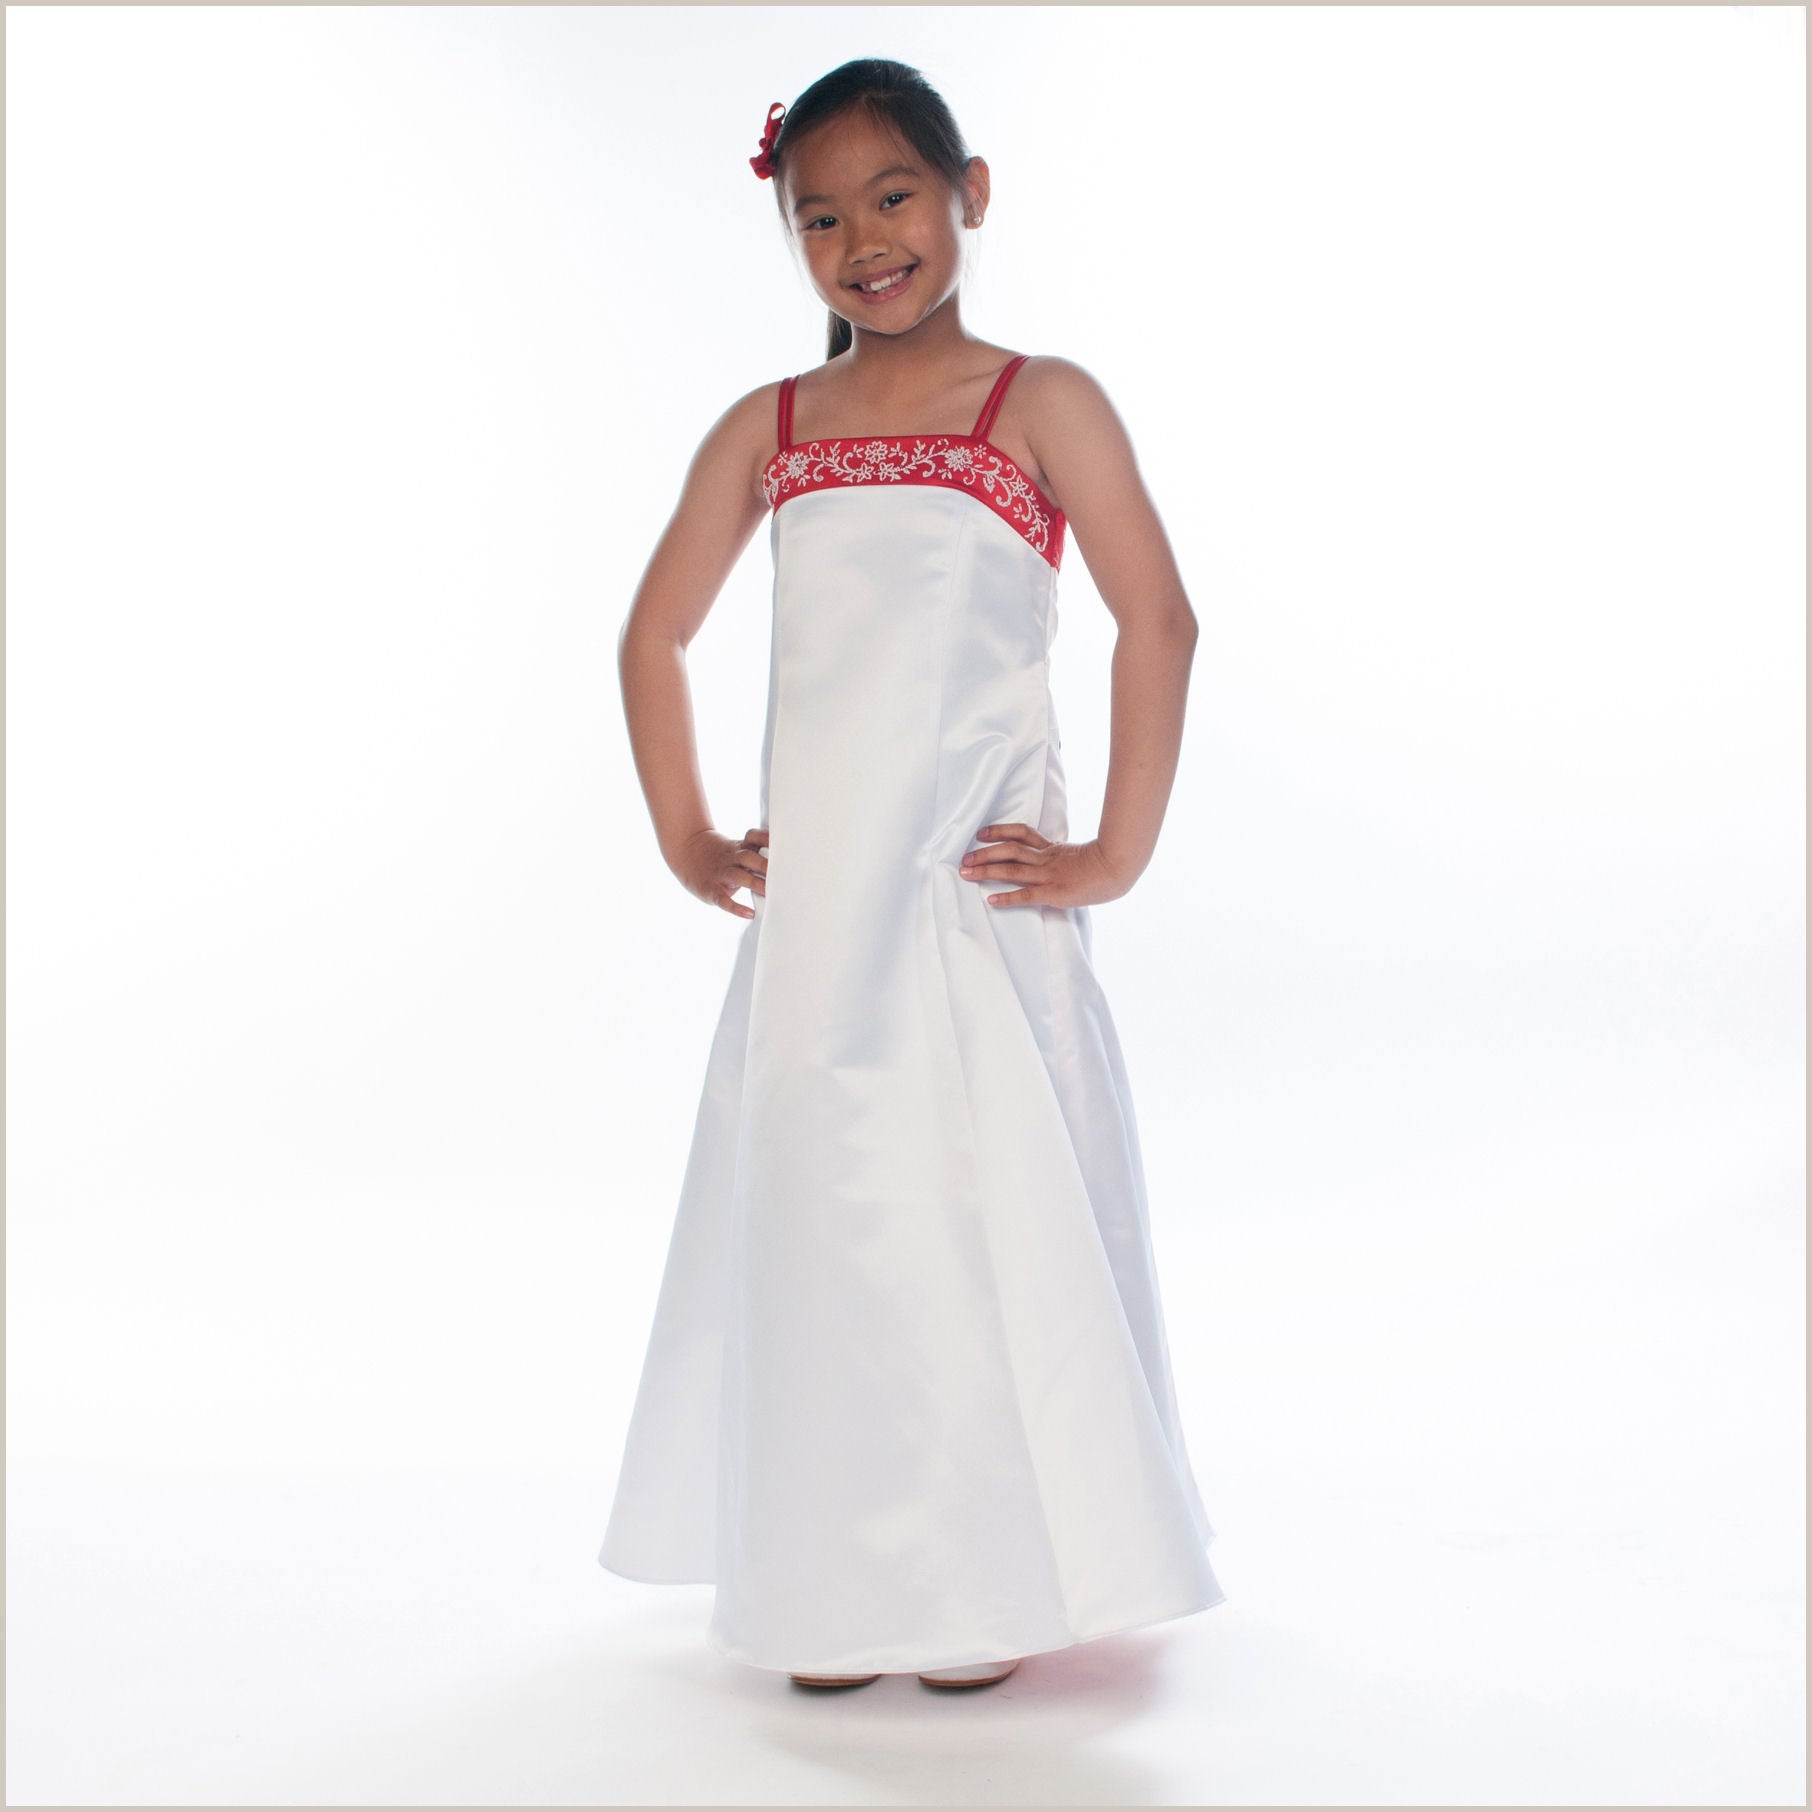 Selina red and white satin bridesmaid dress for children with shawl selina red and white satin bridesmaid dress ombrellifo Image collections